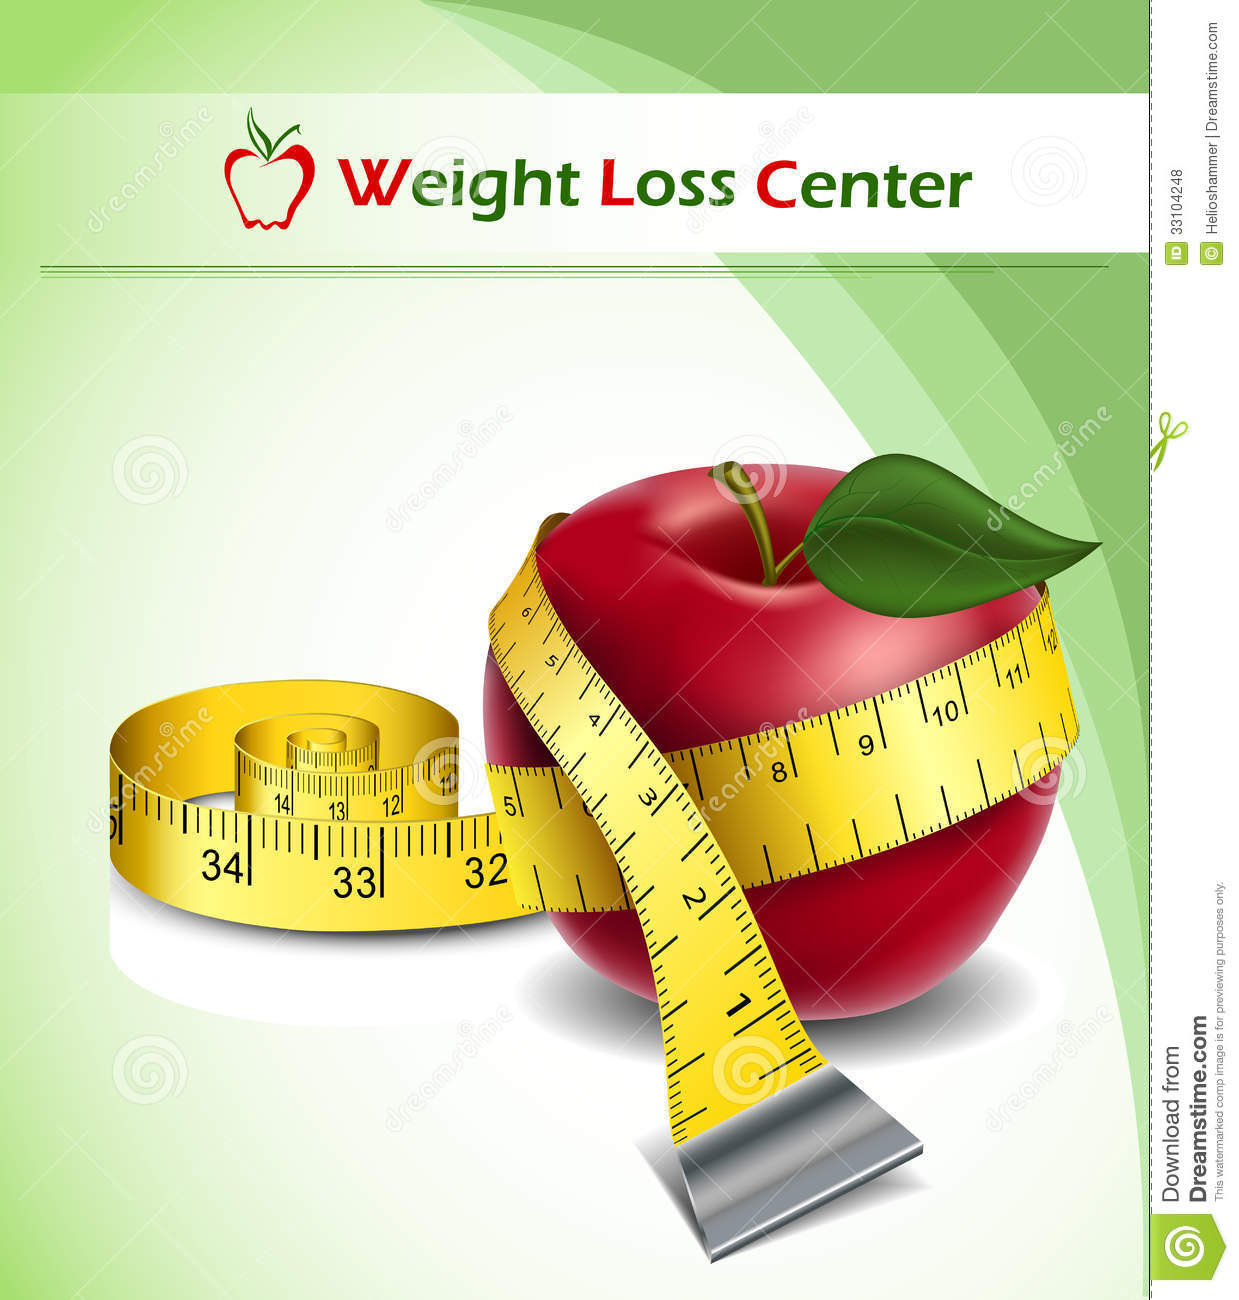 Image weight loss in princeton wv picture 3